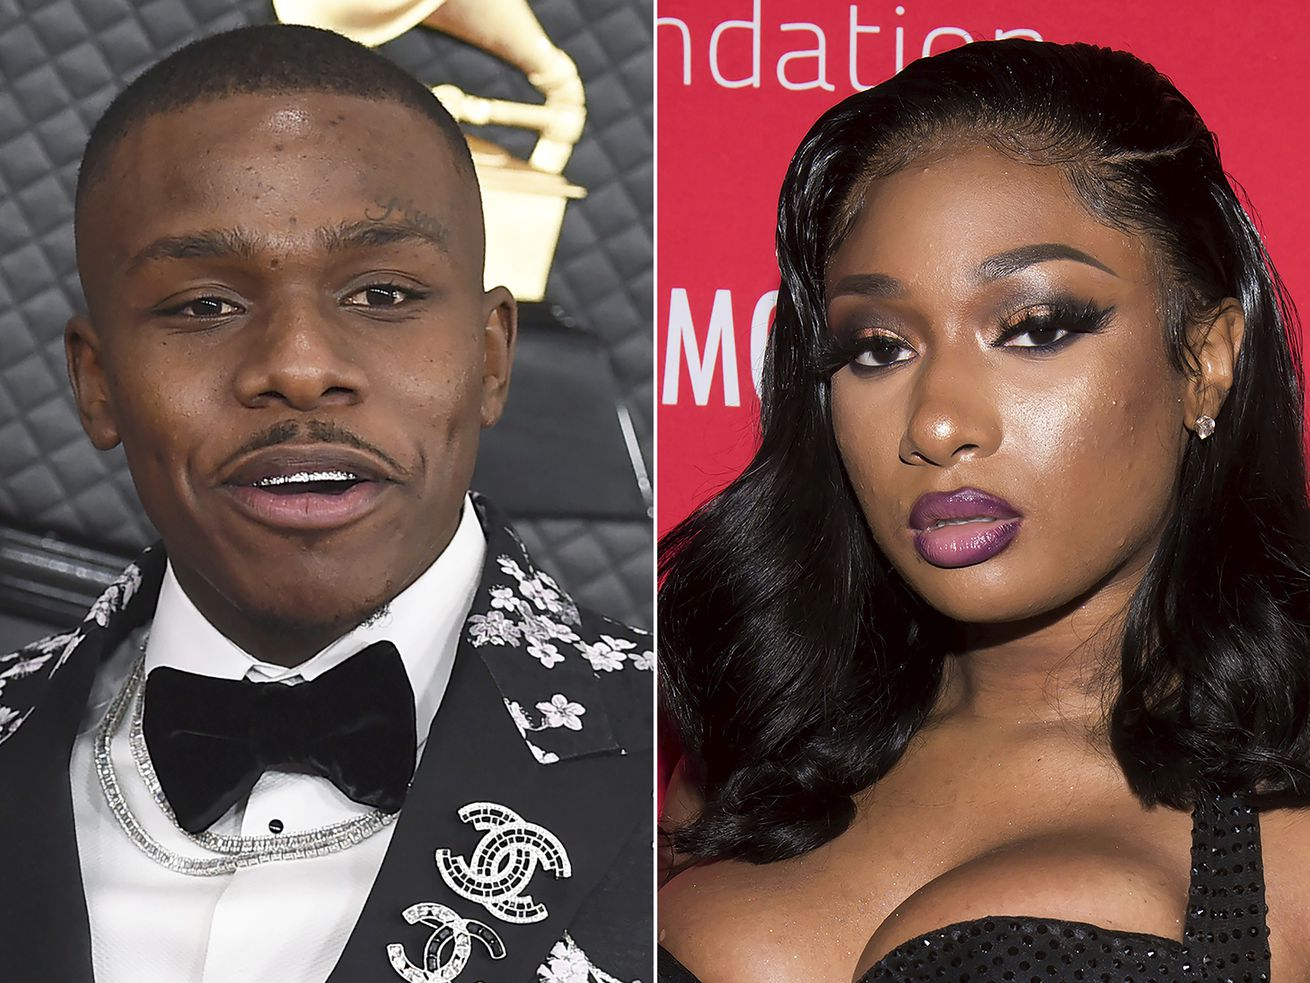 Chart-topping rappers DaBaby and Megan Thee Stallion each scored seven BET Award nominations.